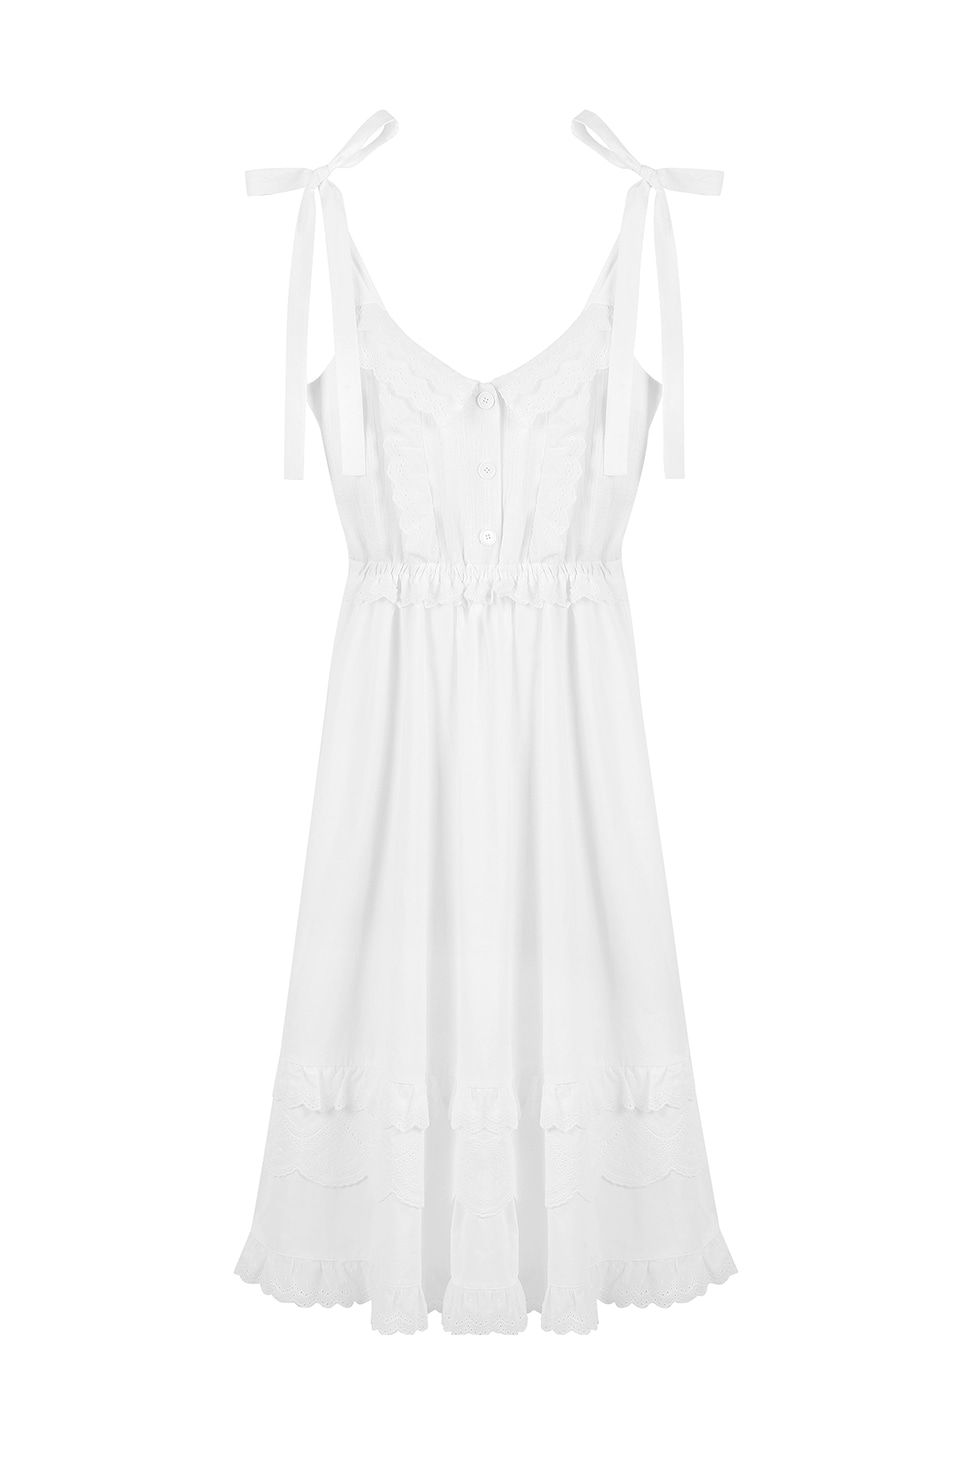 EMBROIDERY SLIP DRESS - WHITE